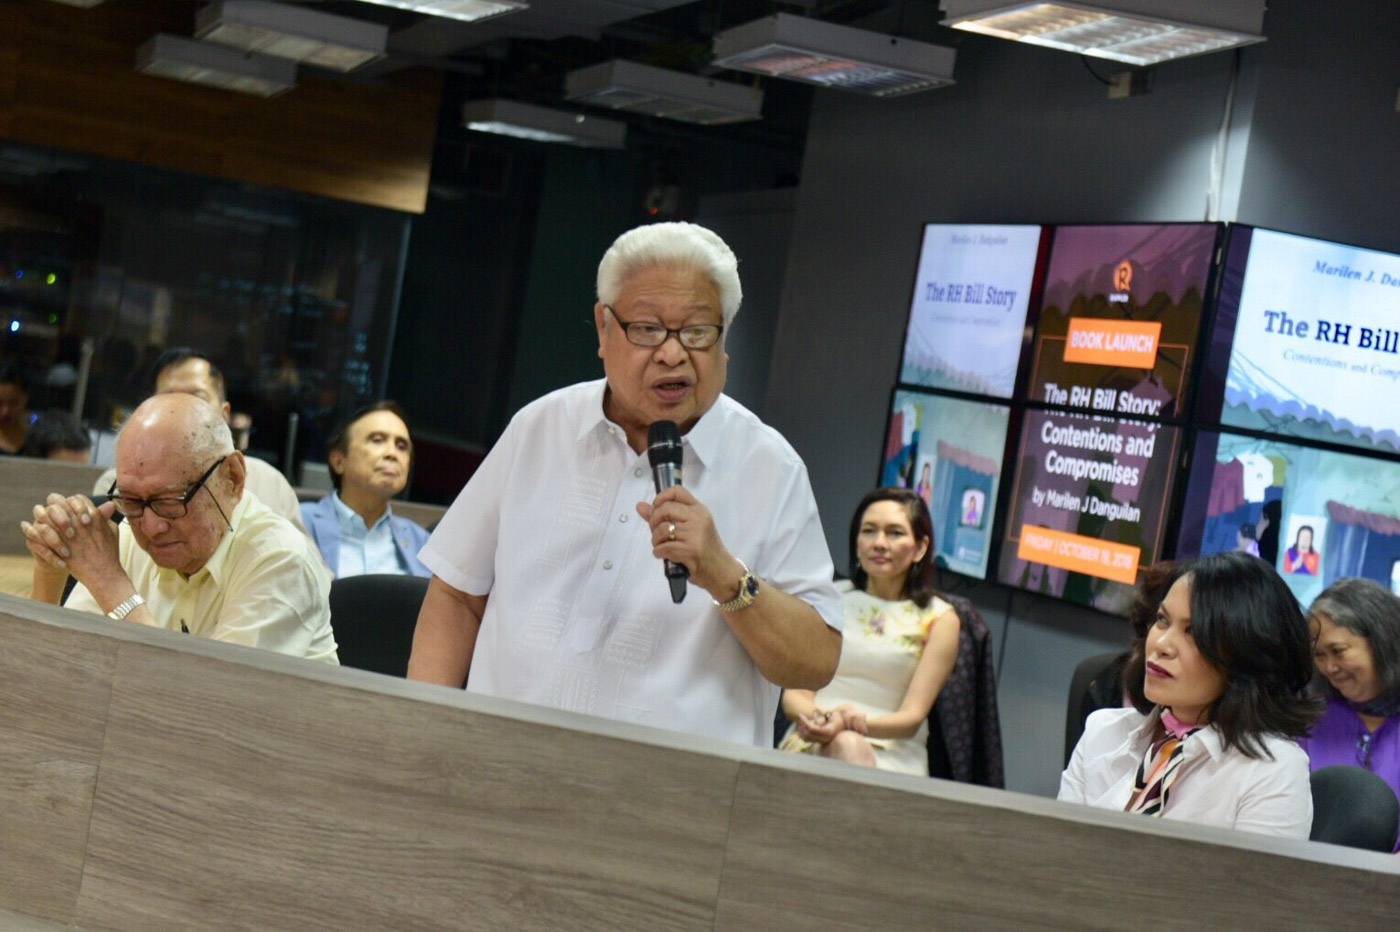 RH LAW. Albay 1st District Representative Edcel Lagman, author of the reproductive health law, gives a speech during the launch of 'The RH Bill Story: Contentions and Compromises.' Photo by Leanne Jazul/Rappler